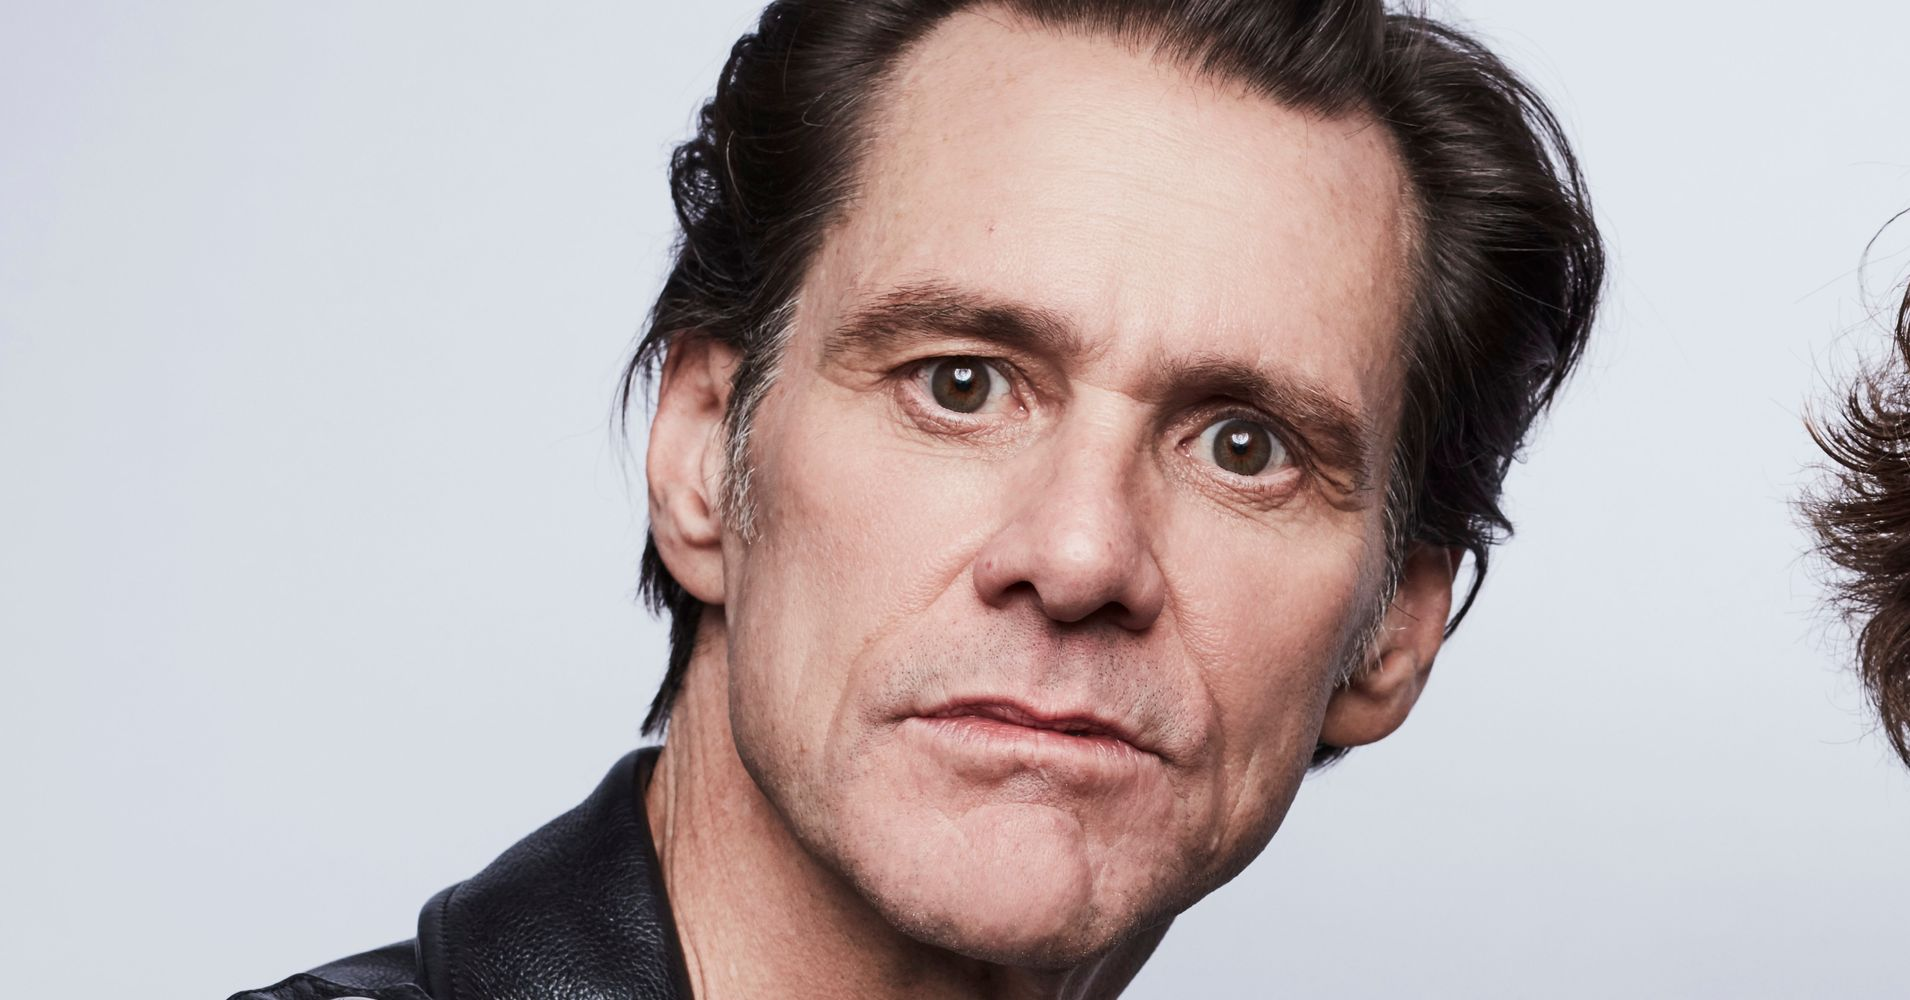 jim carrey mourns toronto van attack victims with powerful new